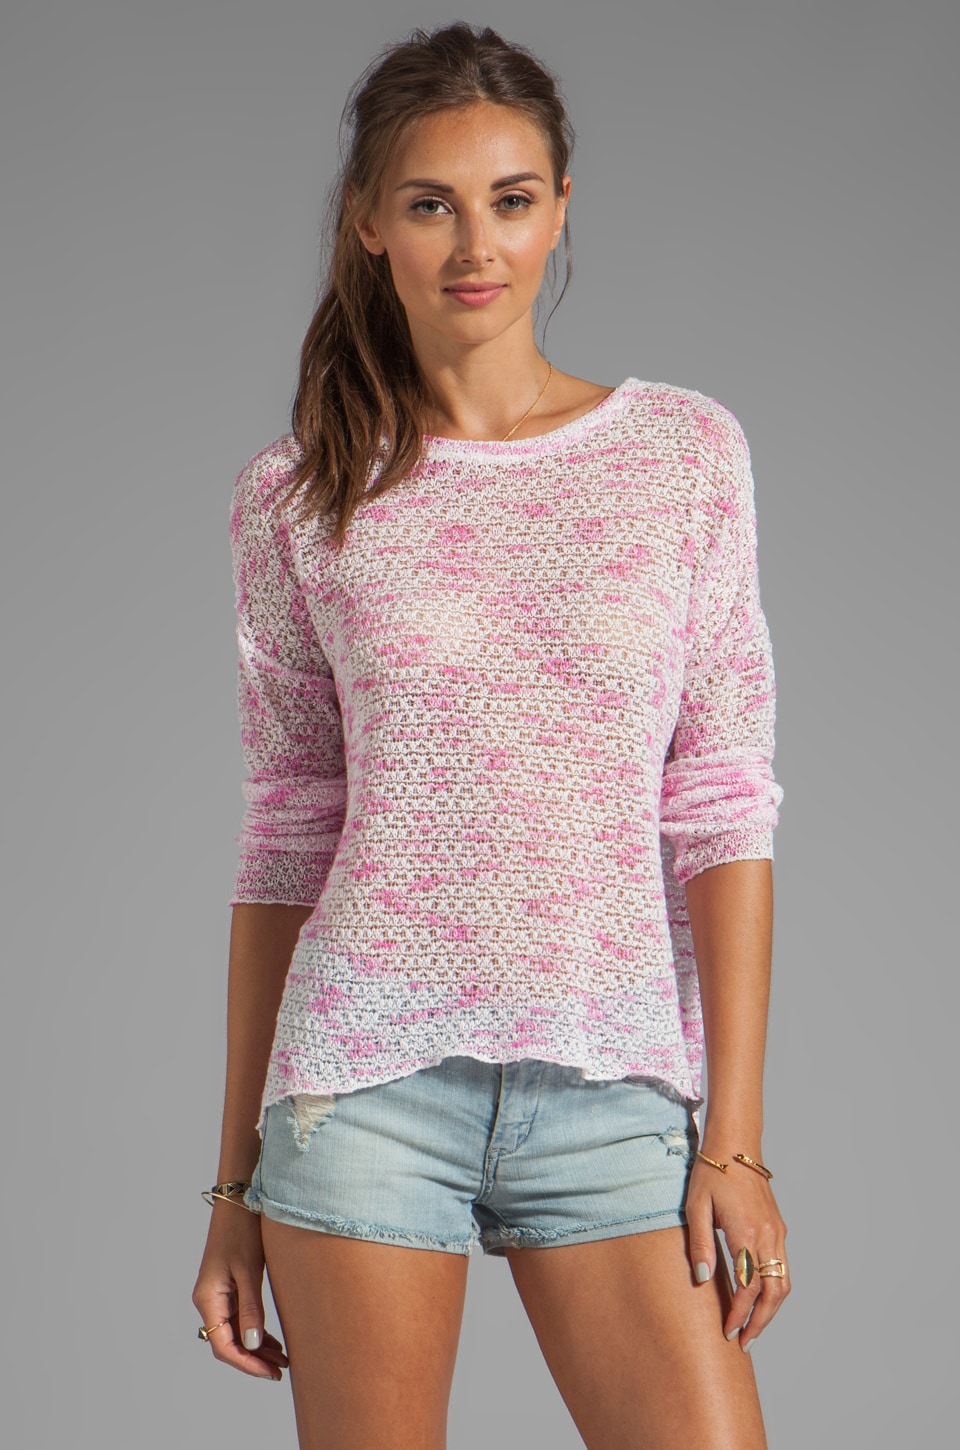 Generation Love Judy Long Sleeve Weave Top in Pink